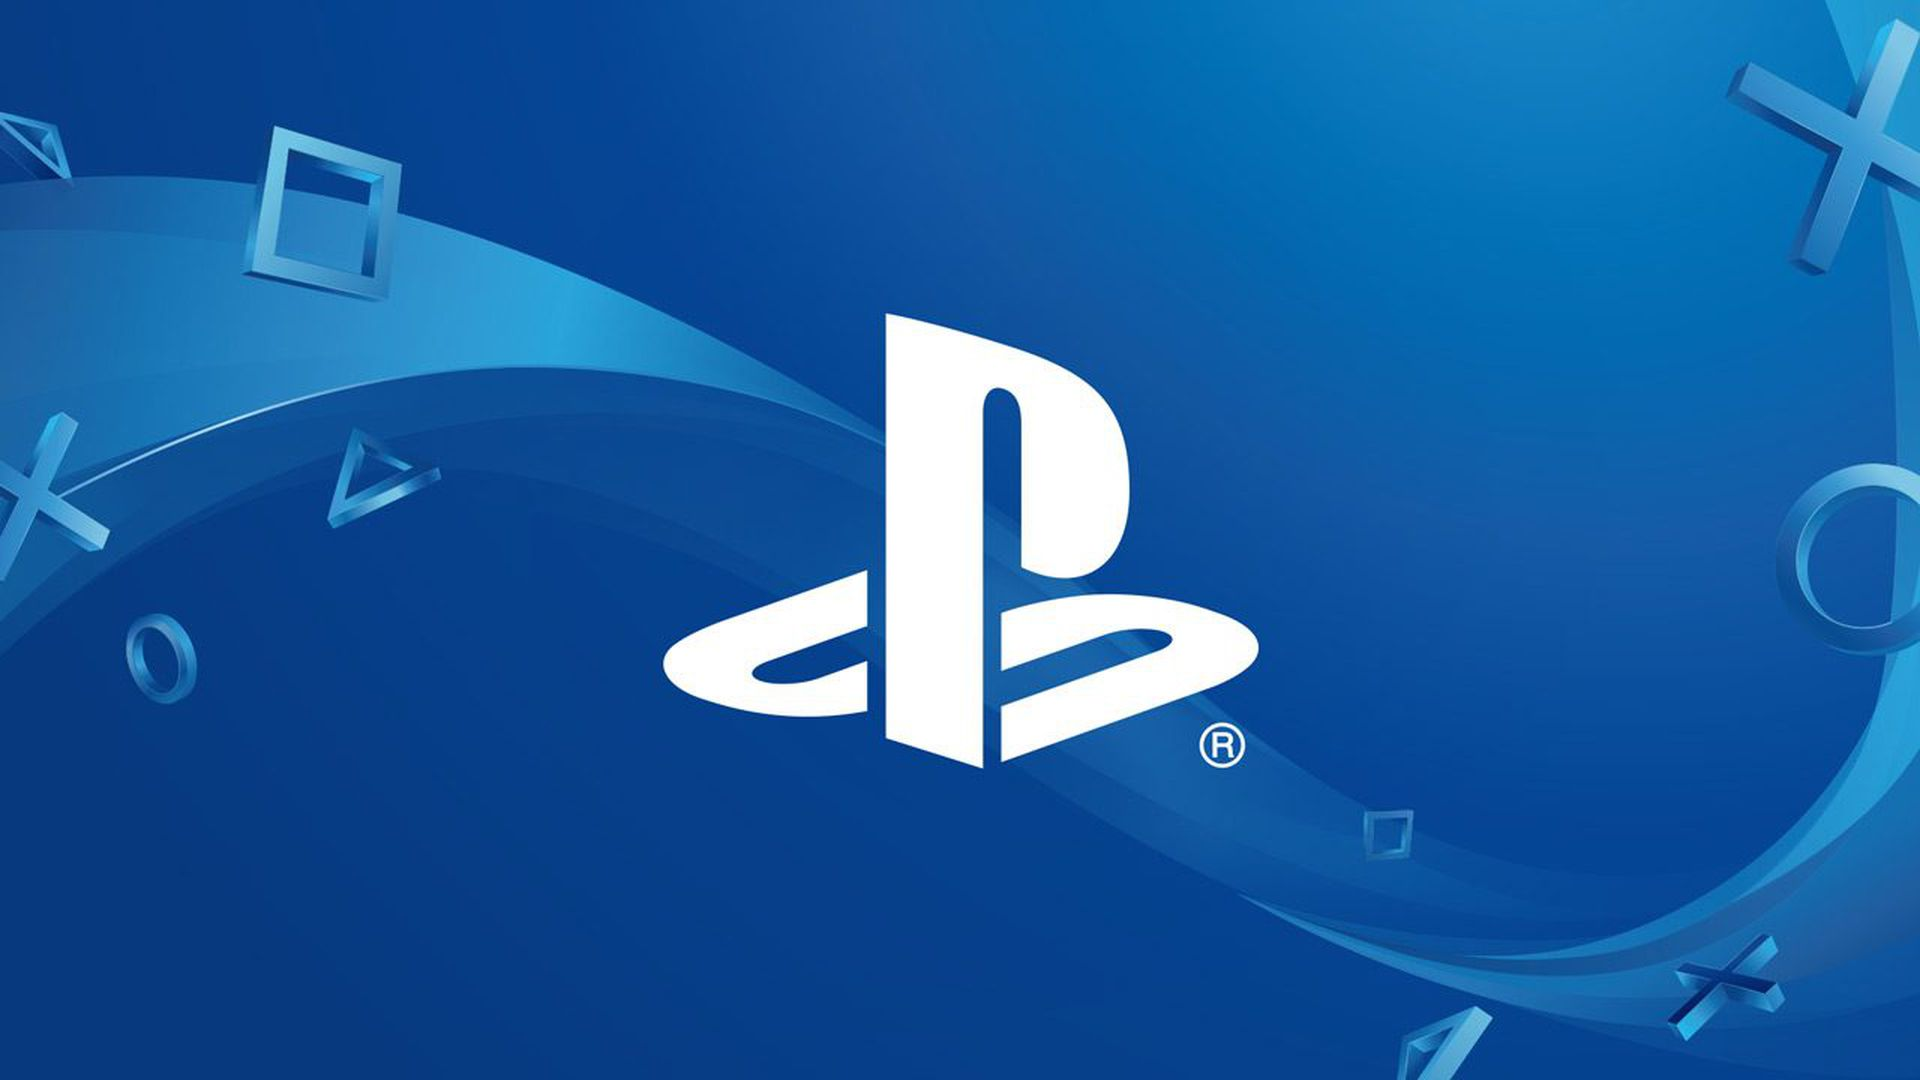 Sony's PlayStation logo against a blue background